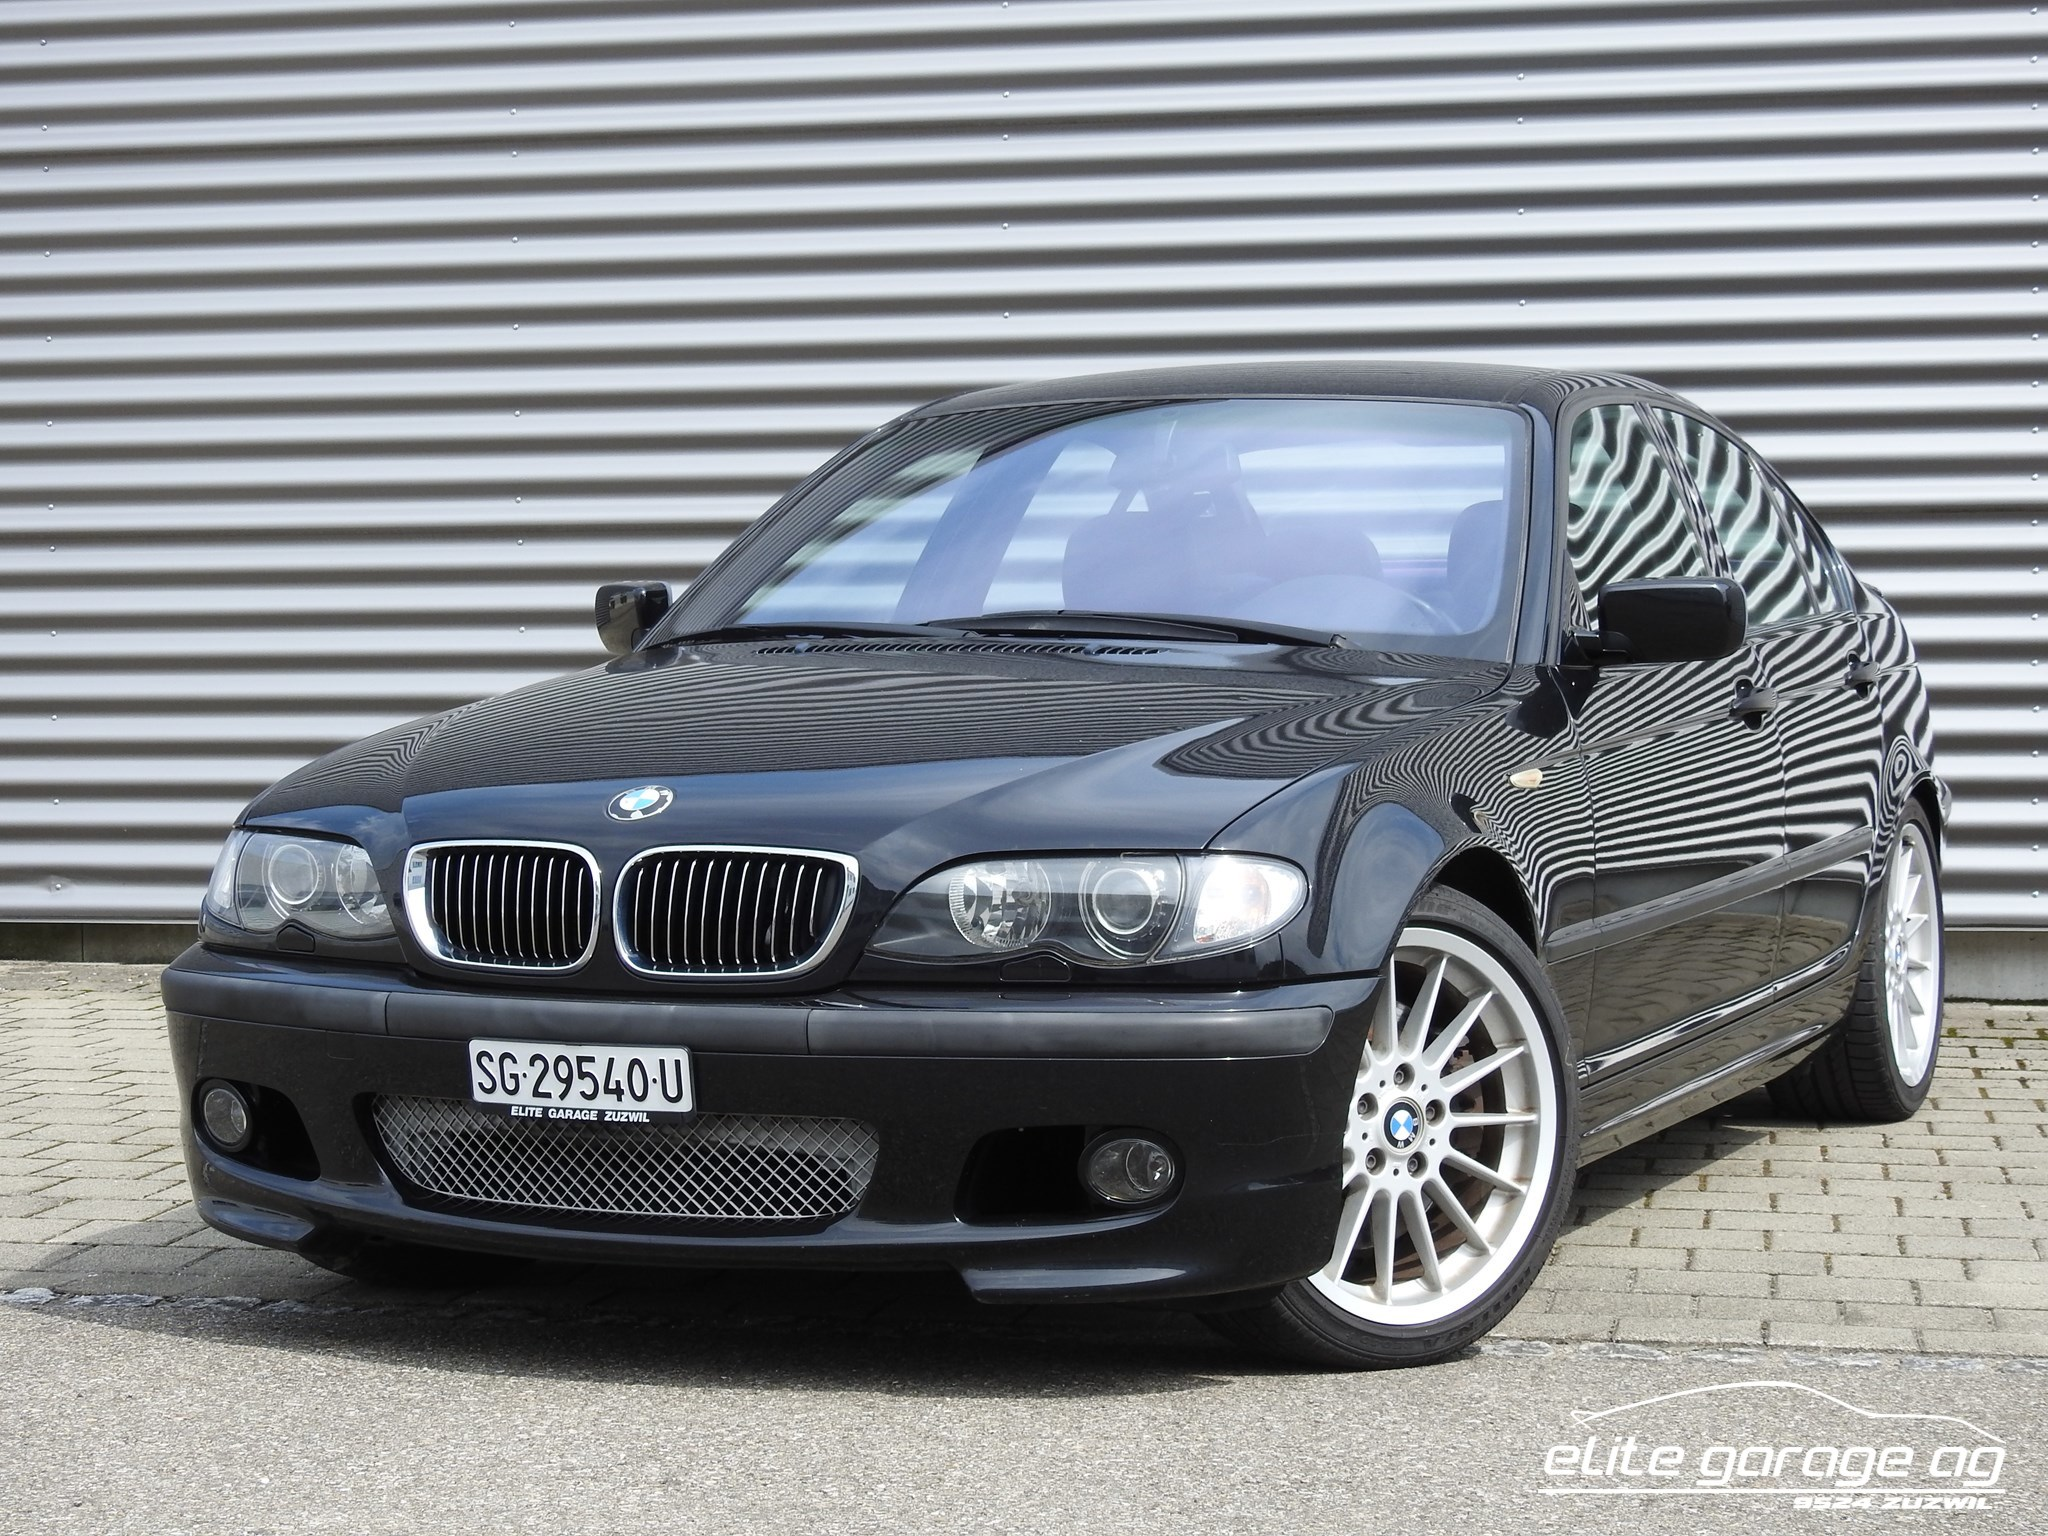 saloon BMW Alpina B3/D3 3 SERIES B3 3.4 S